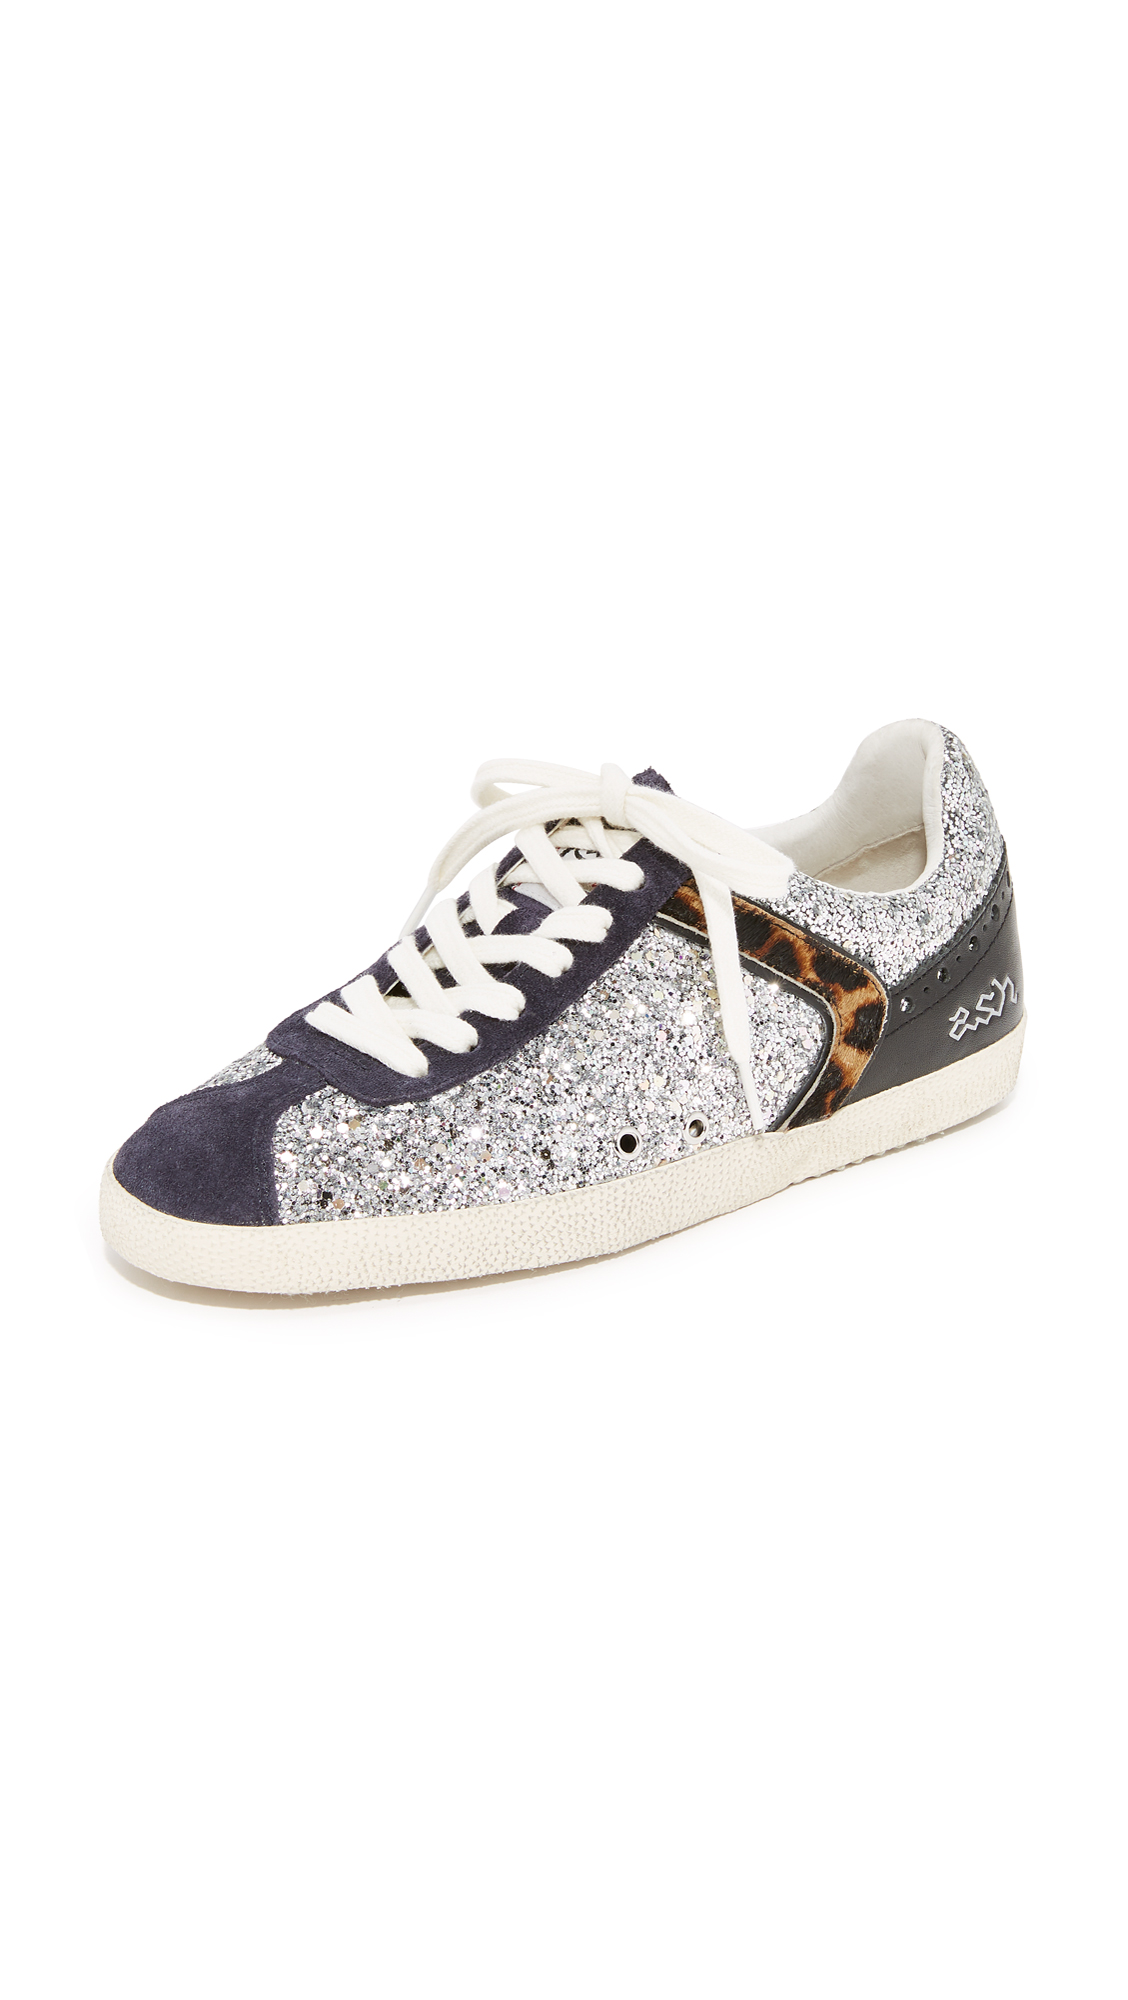 Ash Glitter Sneakers - Galaxy/Everest/Silver